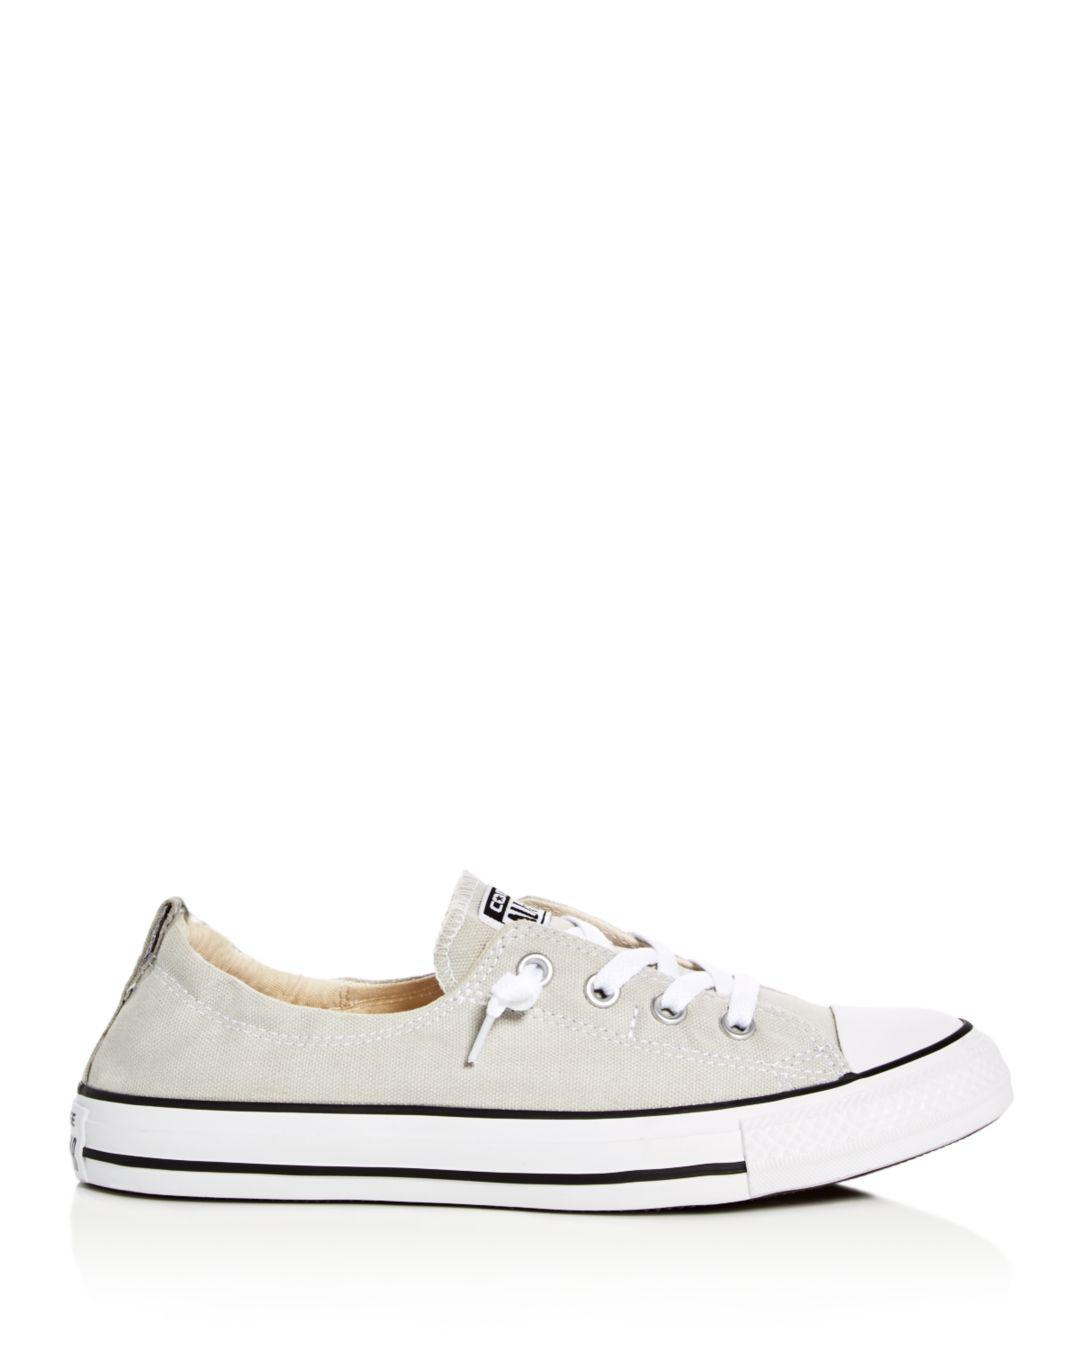 Converse Women s Chuck Taylor All Star Shoreline Slip-on Sneakers in White  - Save 12% - Lyst 0c1e1acab